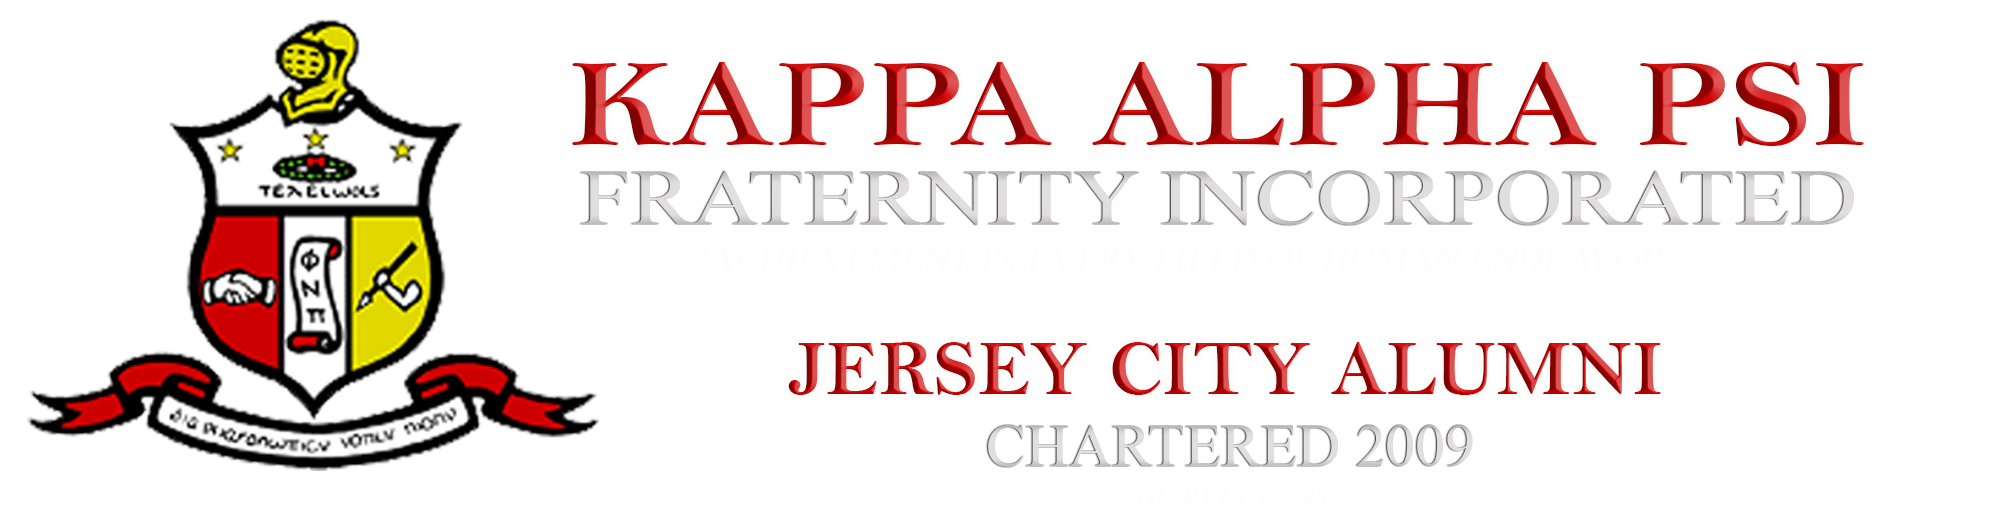 Jersey City Nupes